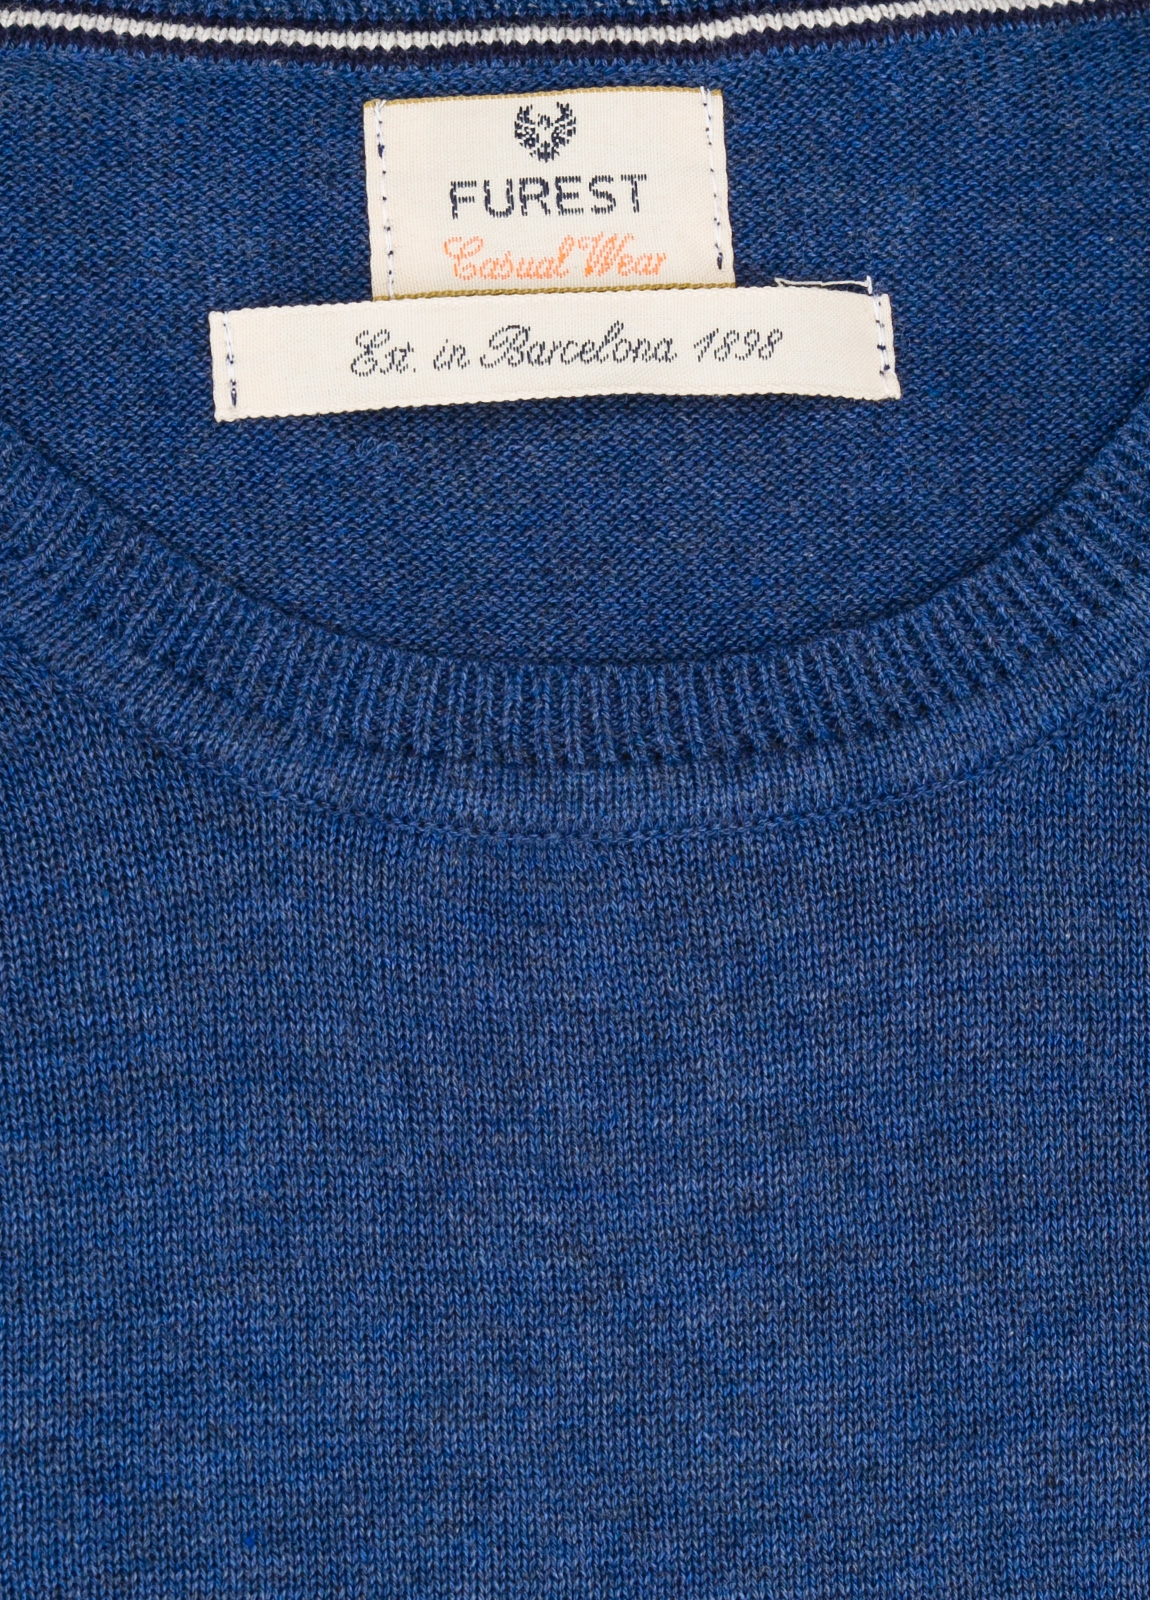 Jersey Casual Wear, SLIM FIT cuello redondo color azul, 100% algodón. - Ítem1